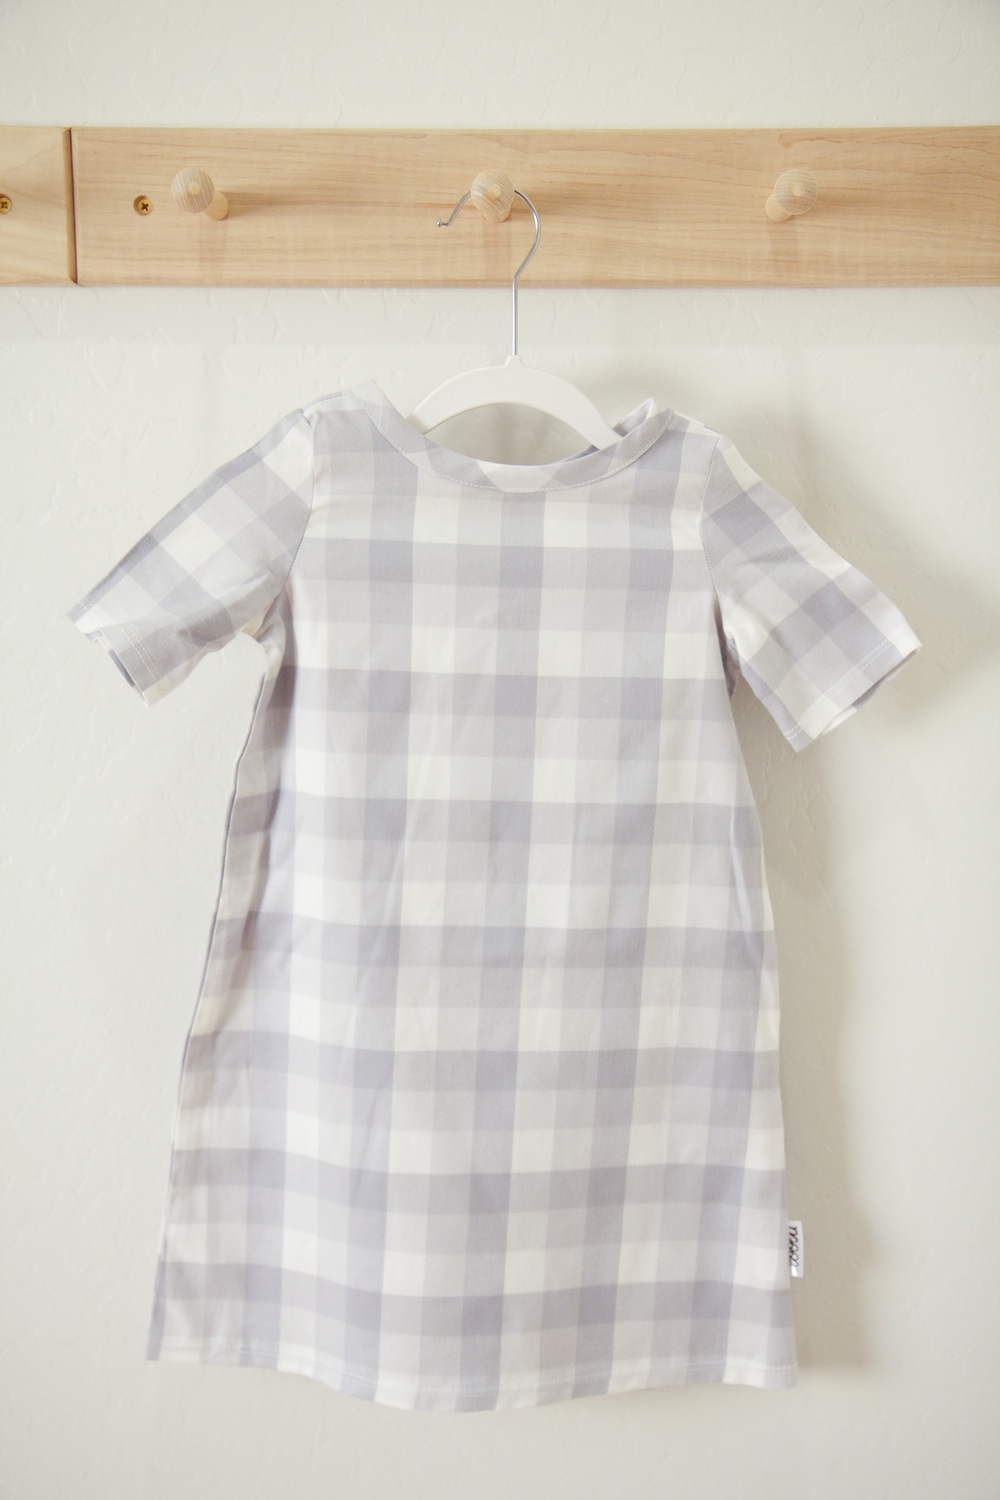 loola grey plaid dress - grace.jpg